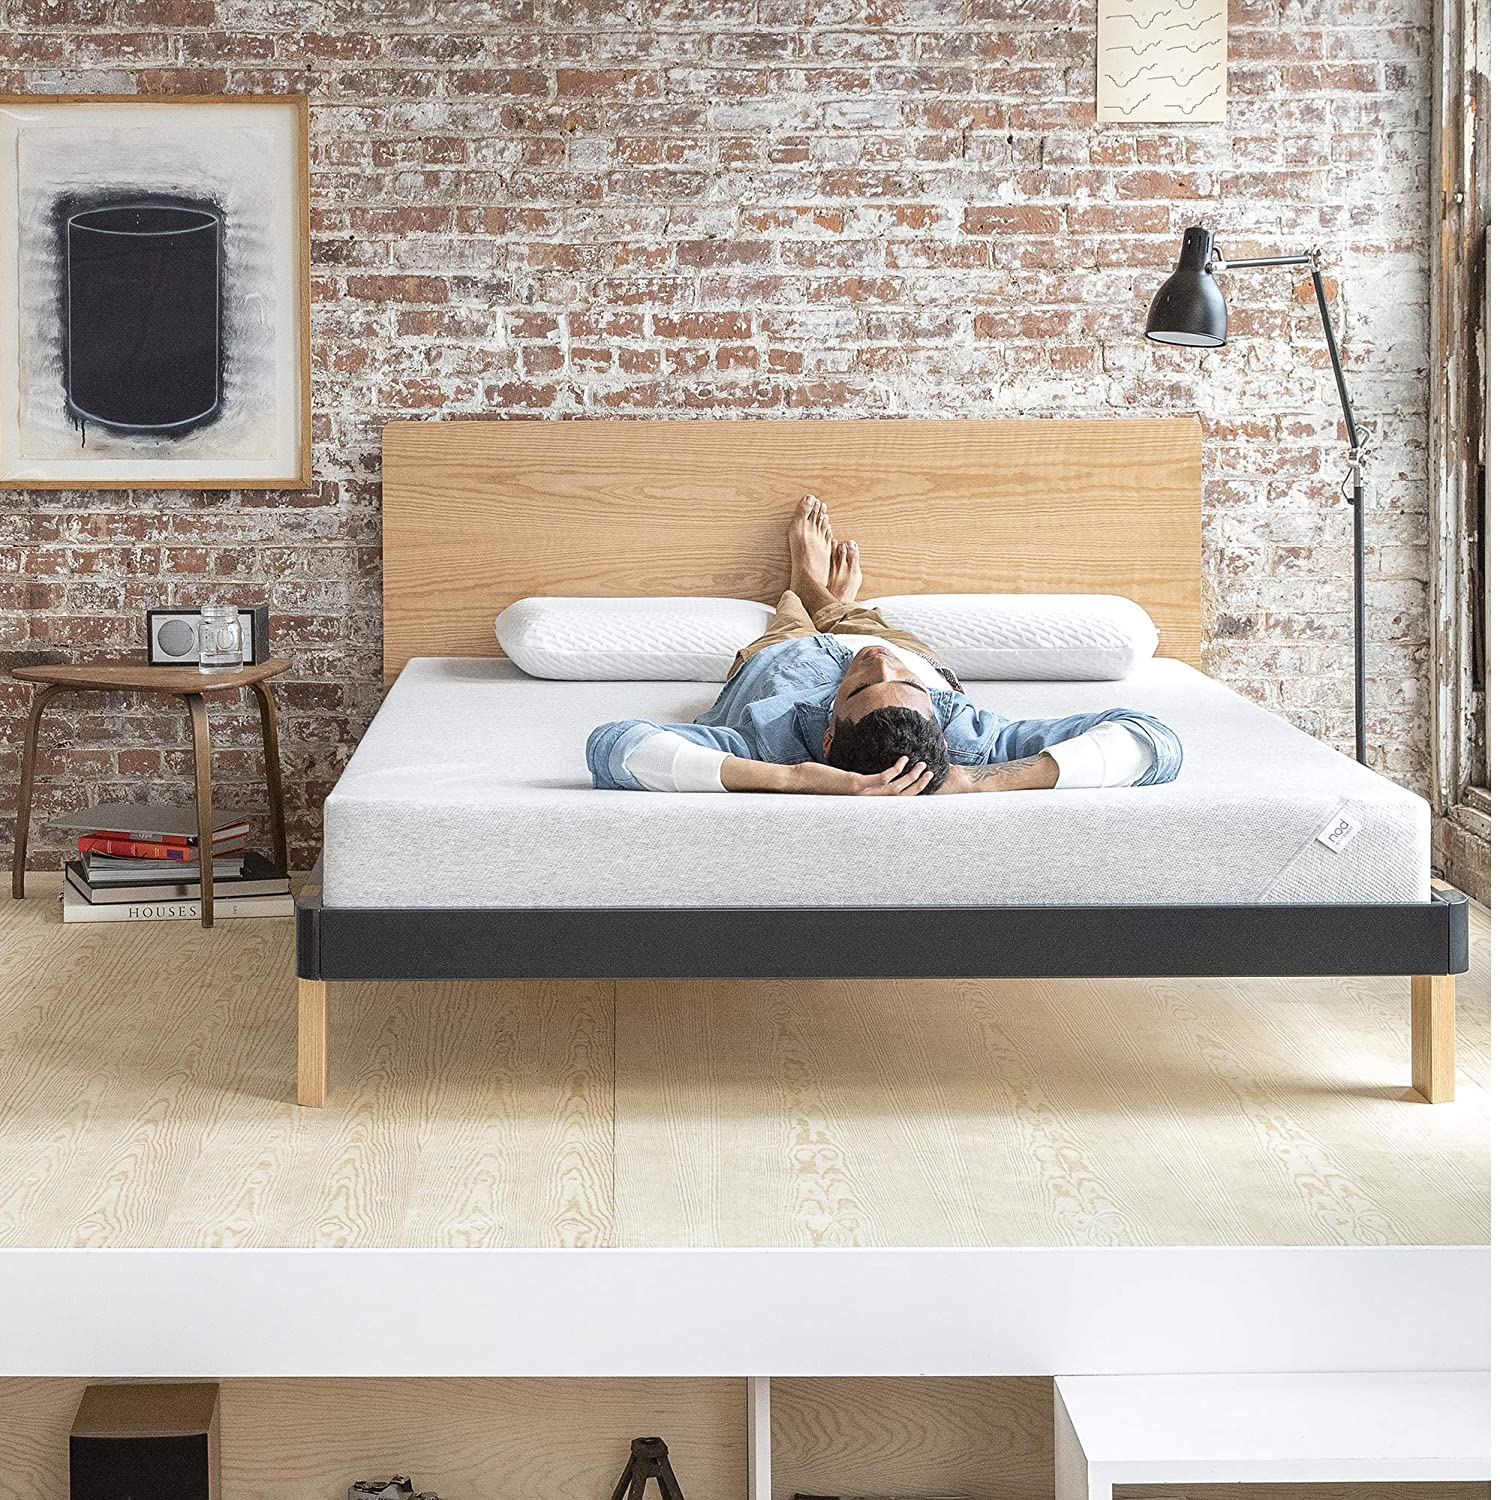 Nod by Tuft Needle Free shipping anywhere in the nation Adaptive 8-Inch Super sale Queen Foam Mattress